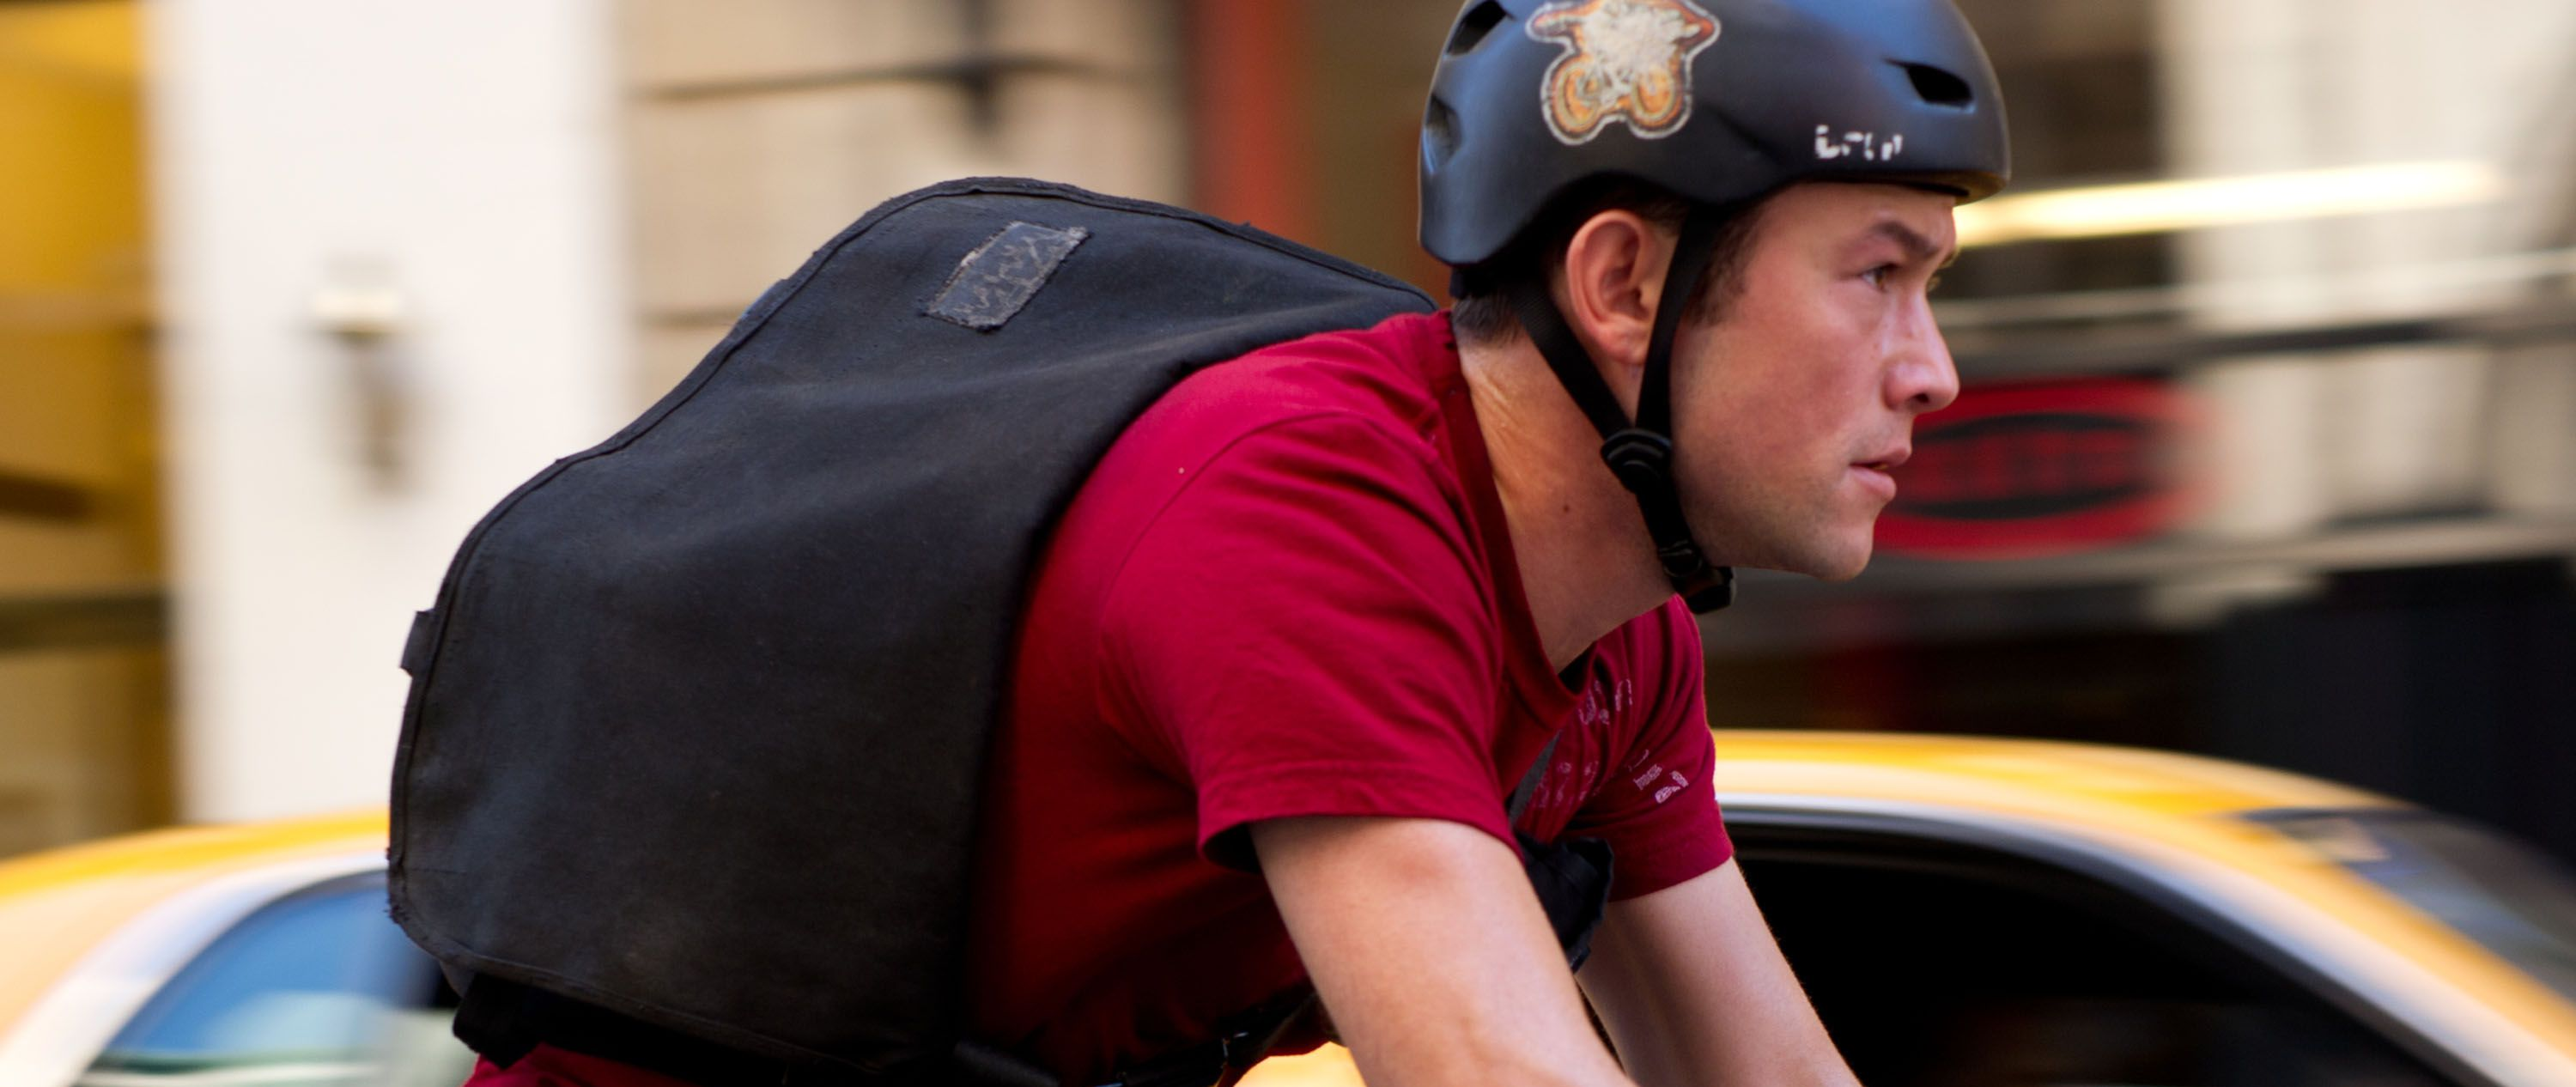 An image from Premium Rush